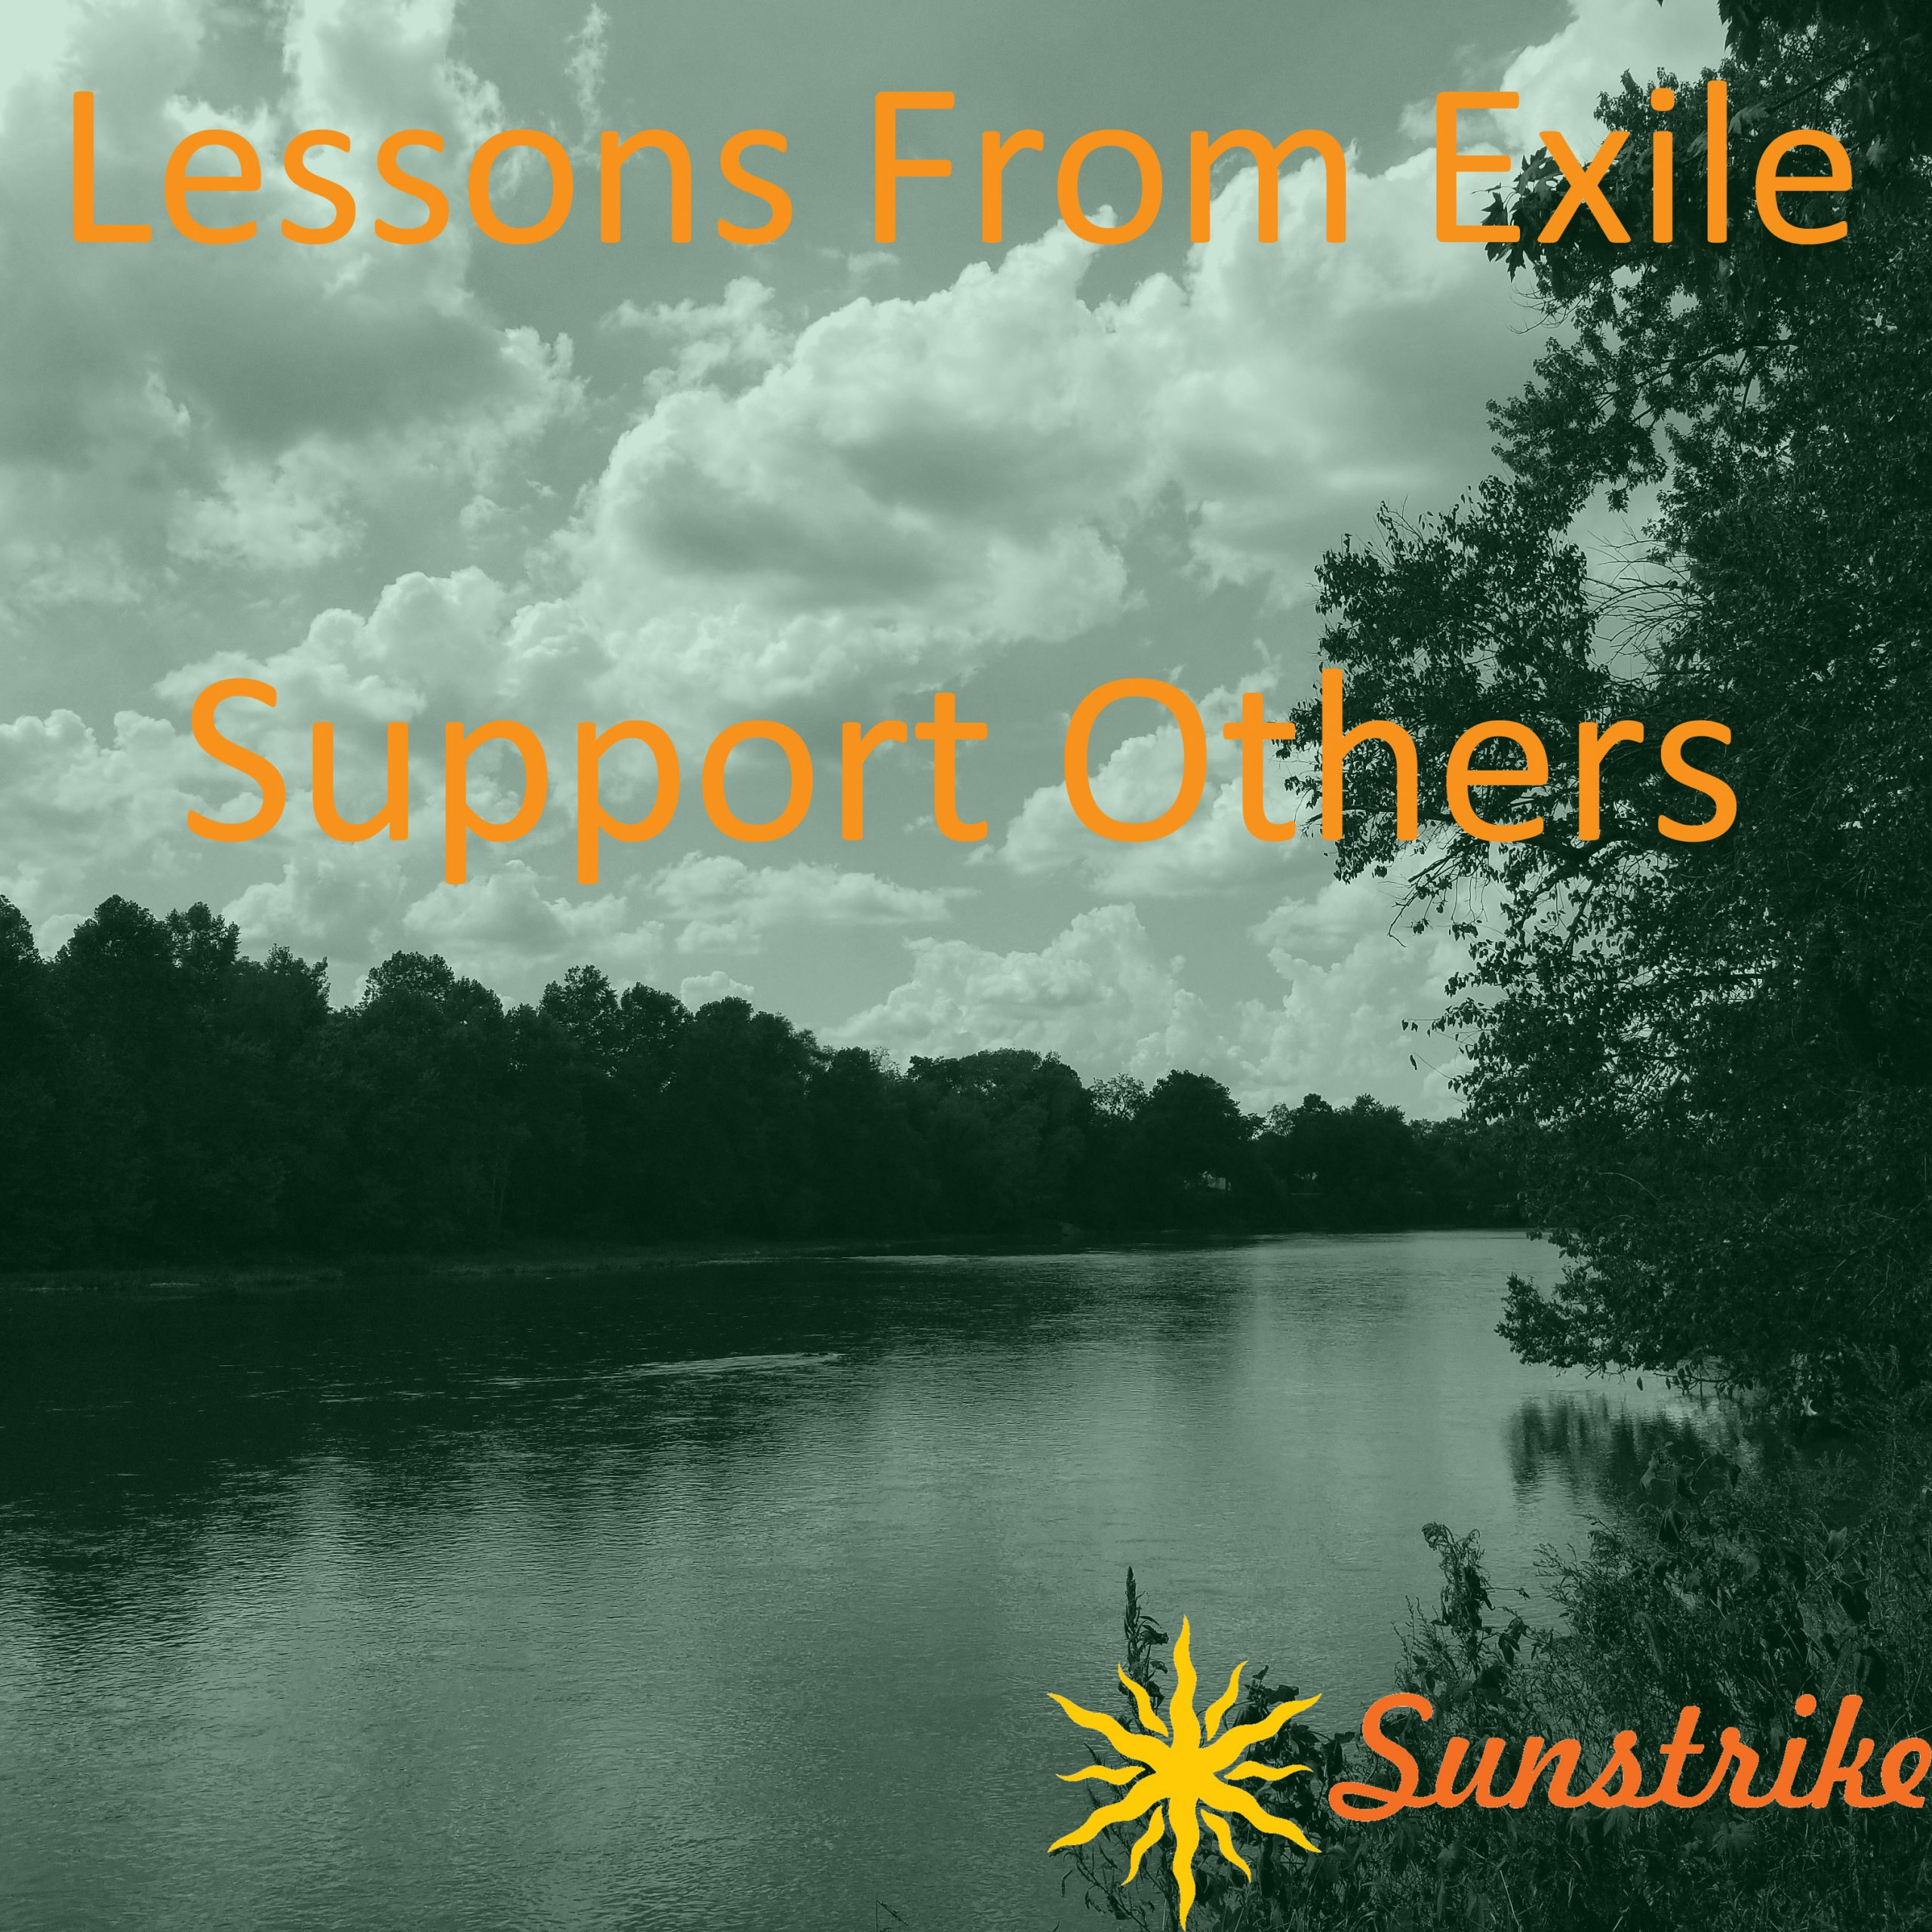 Lessons from Exile #63: Support Others